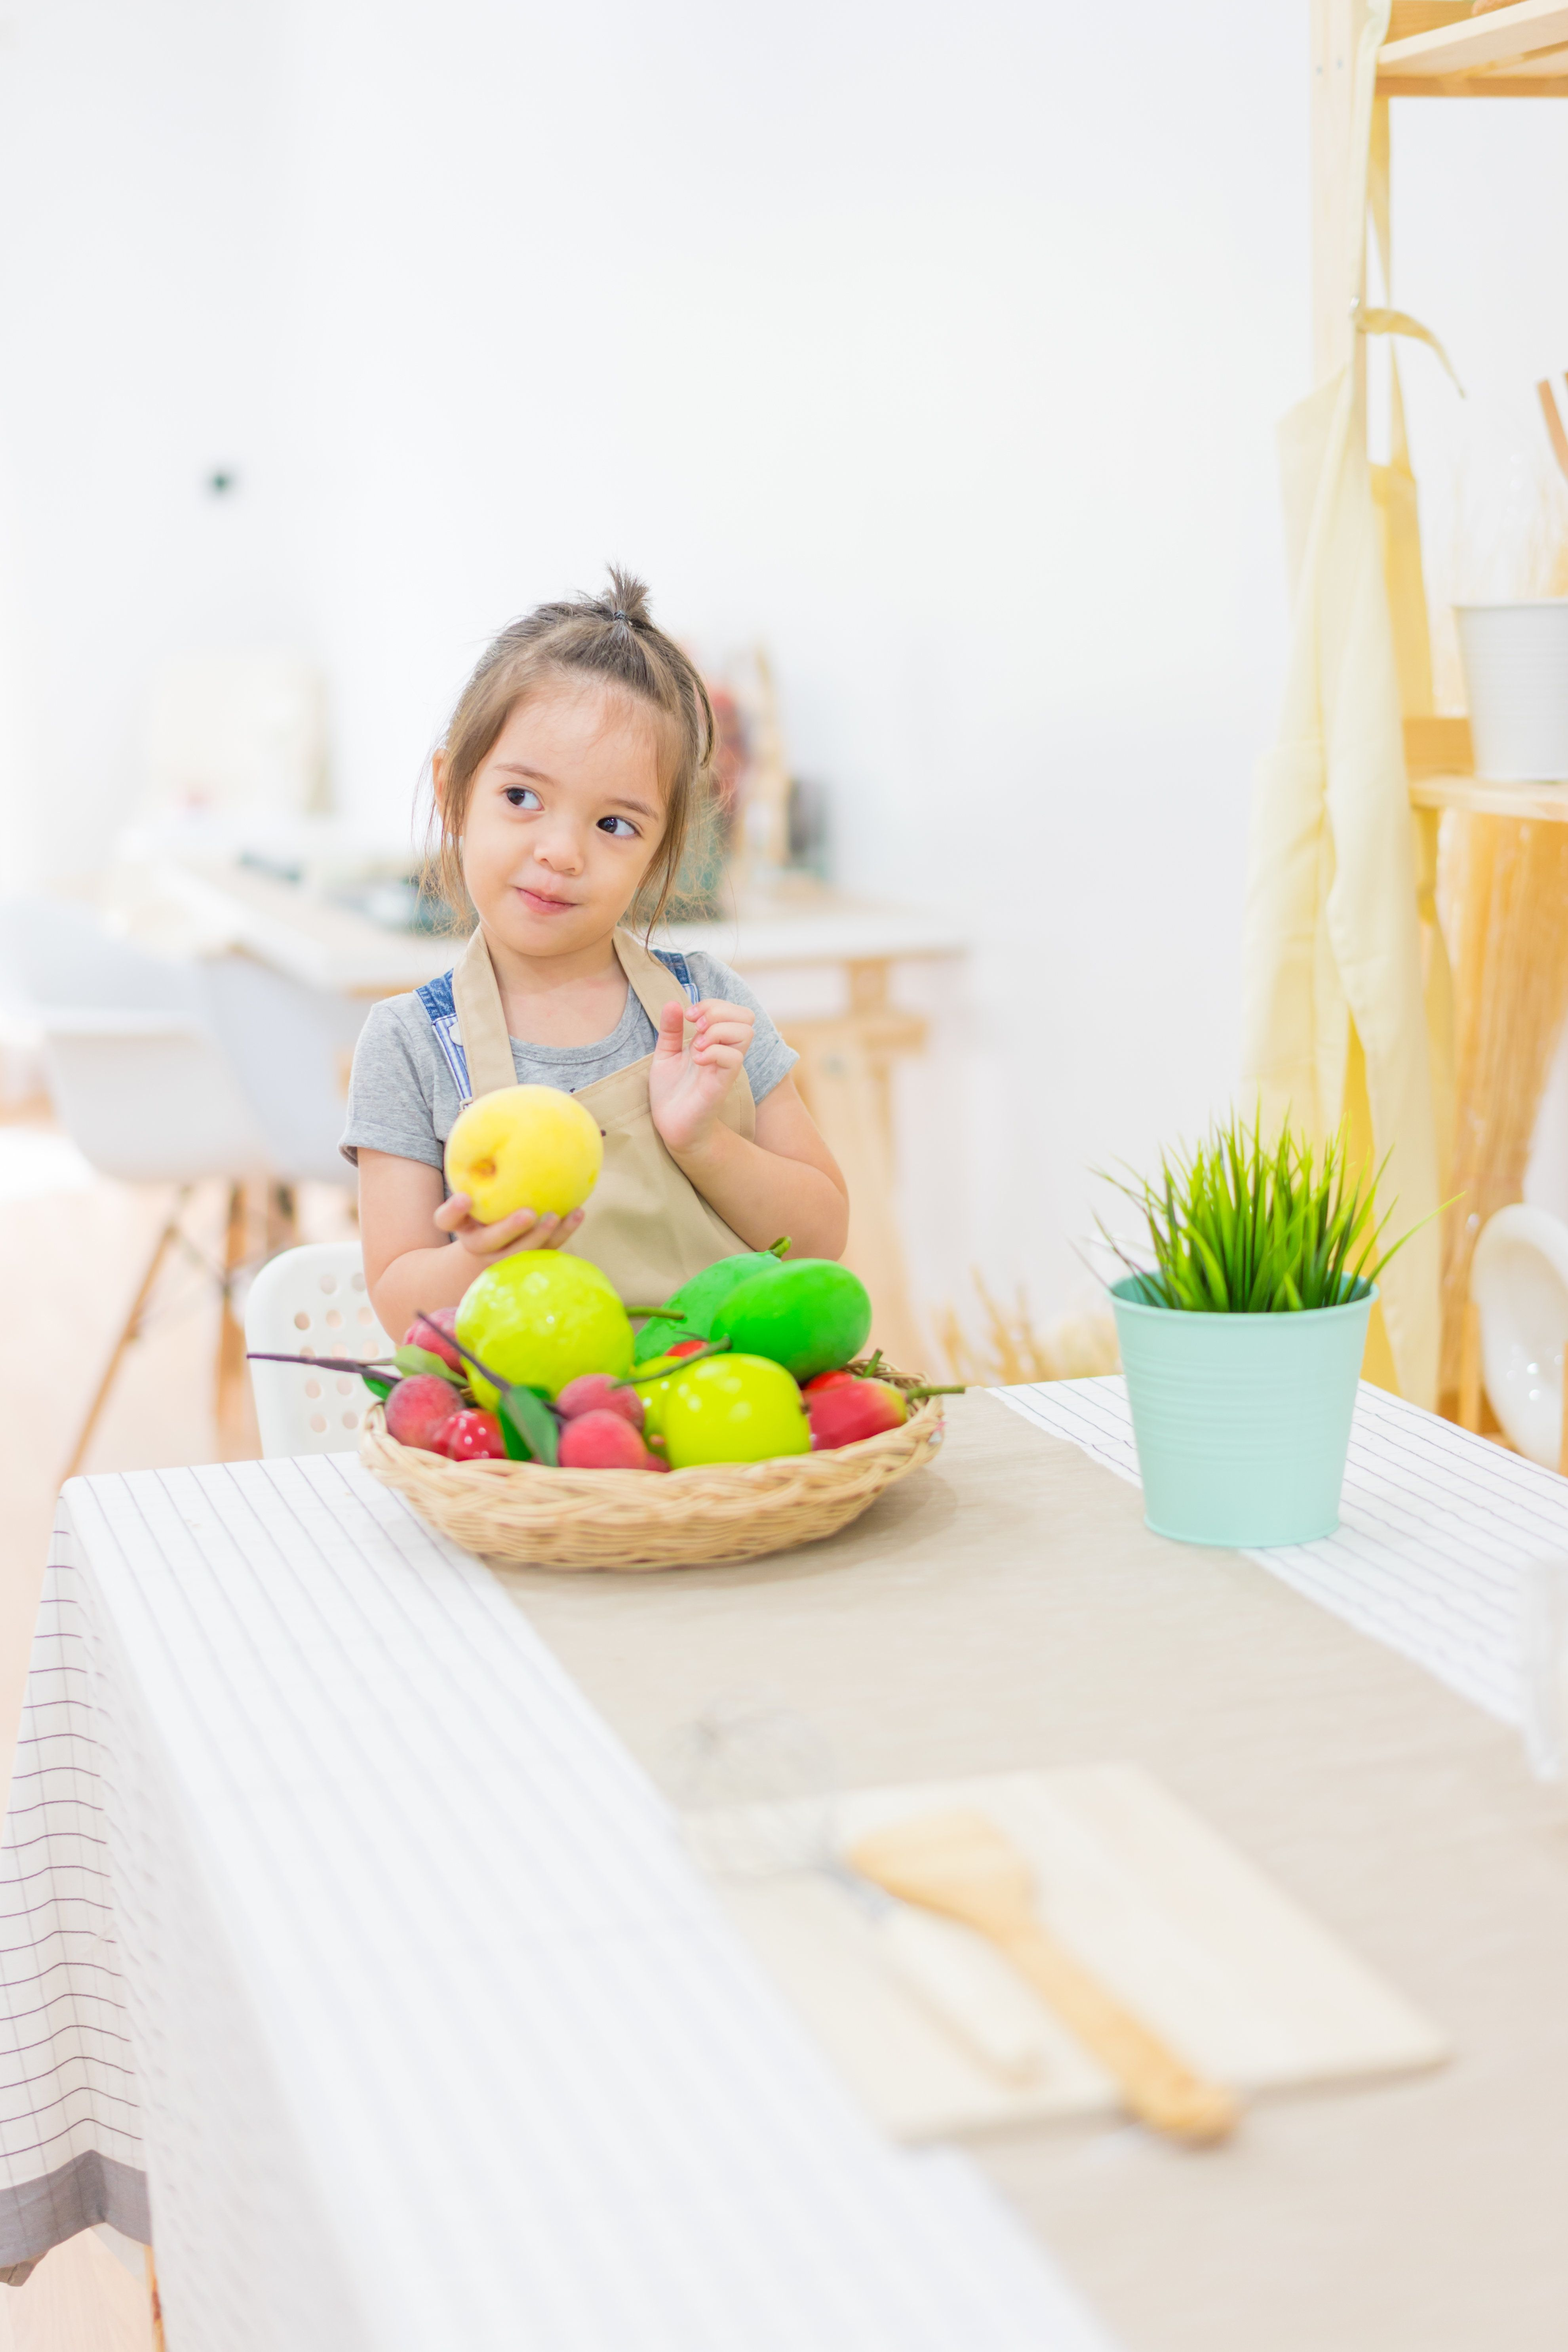 Beautiful little girl with fruits  in basket on kitchen table at house